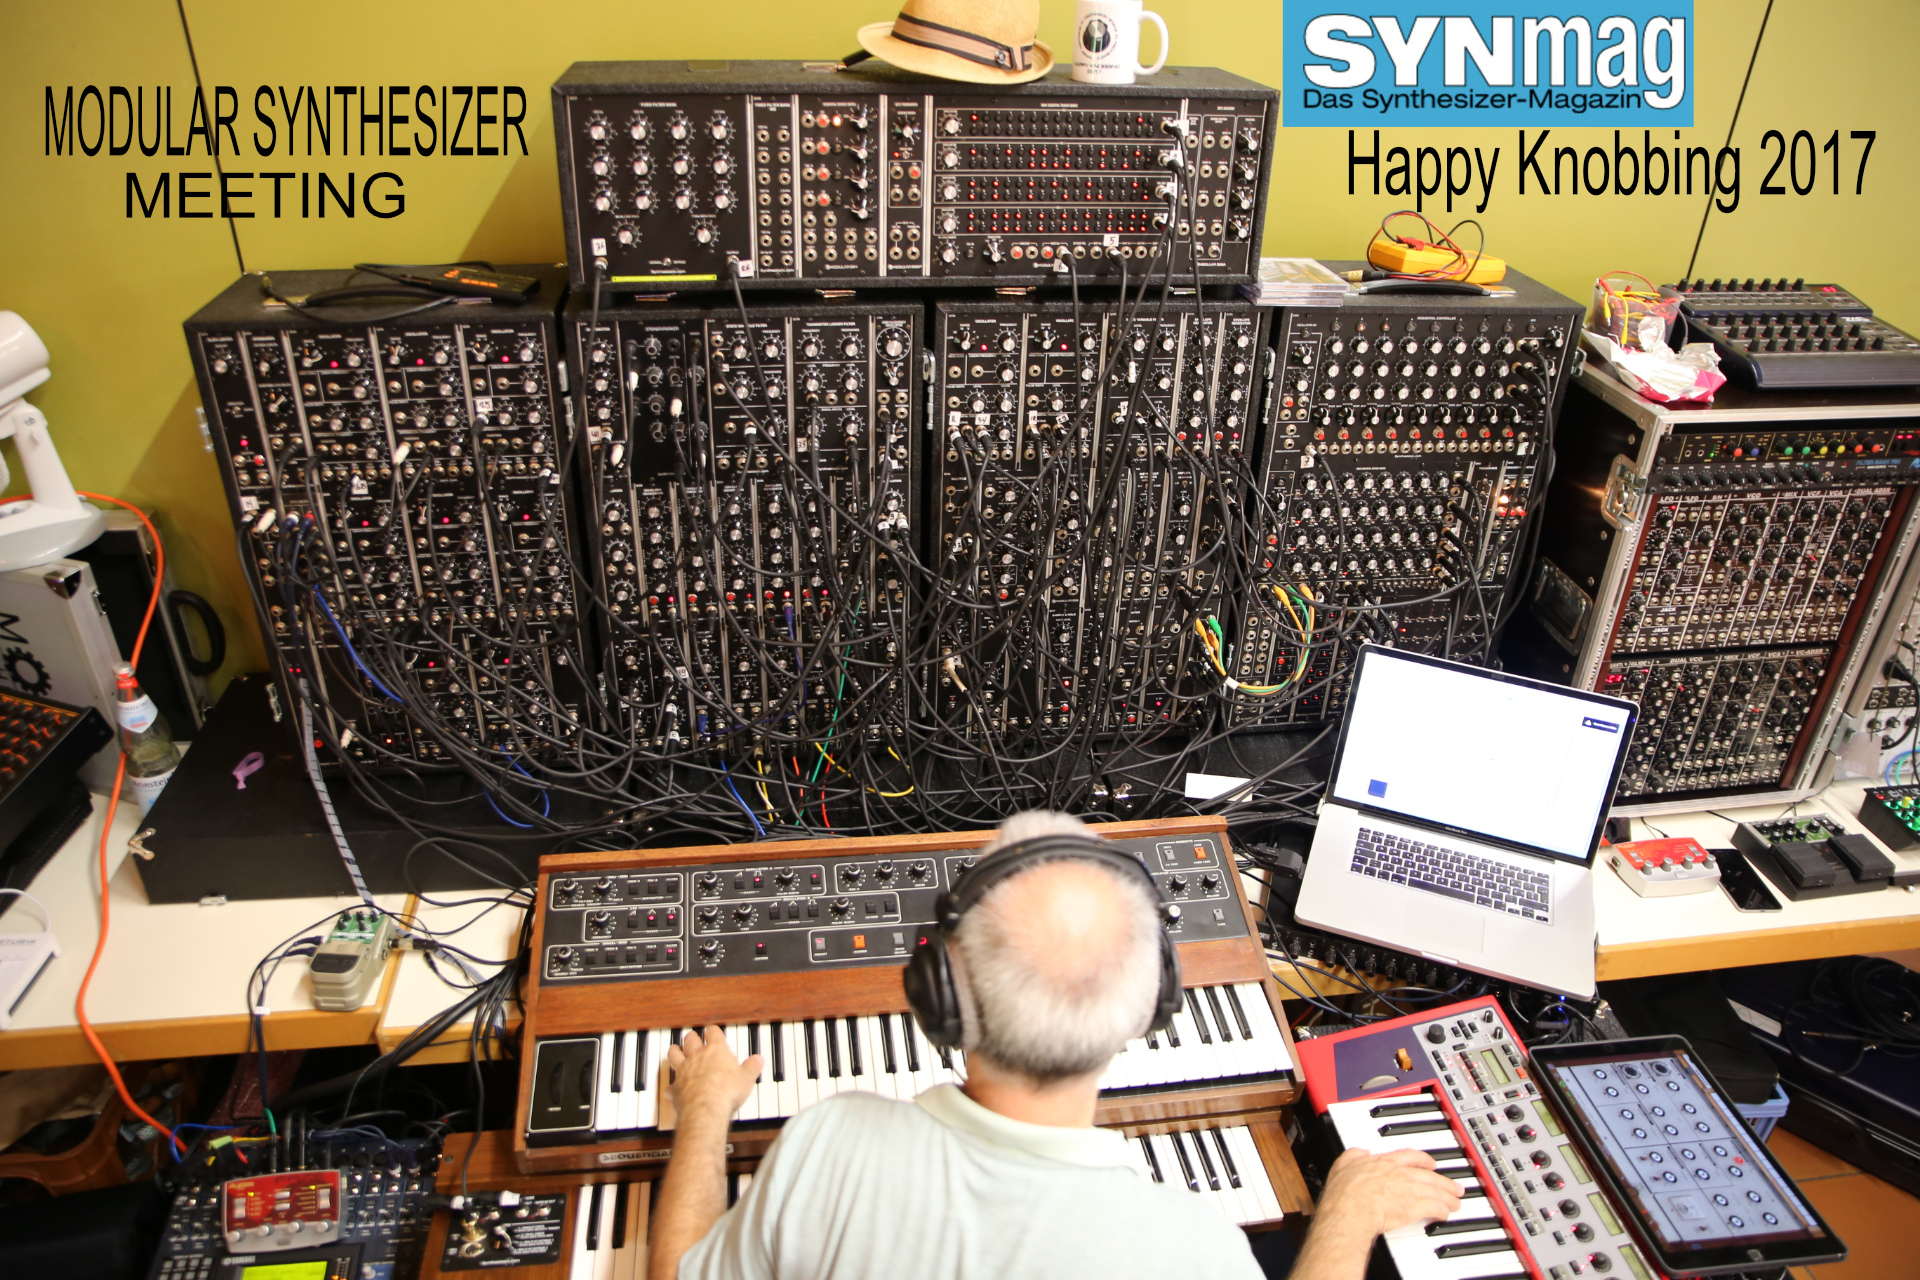 Happy Knobbing Modular Synthesizer Meeting, Fischbach / Germany